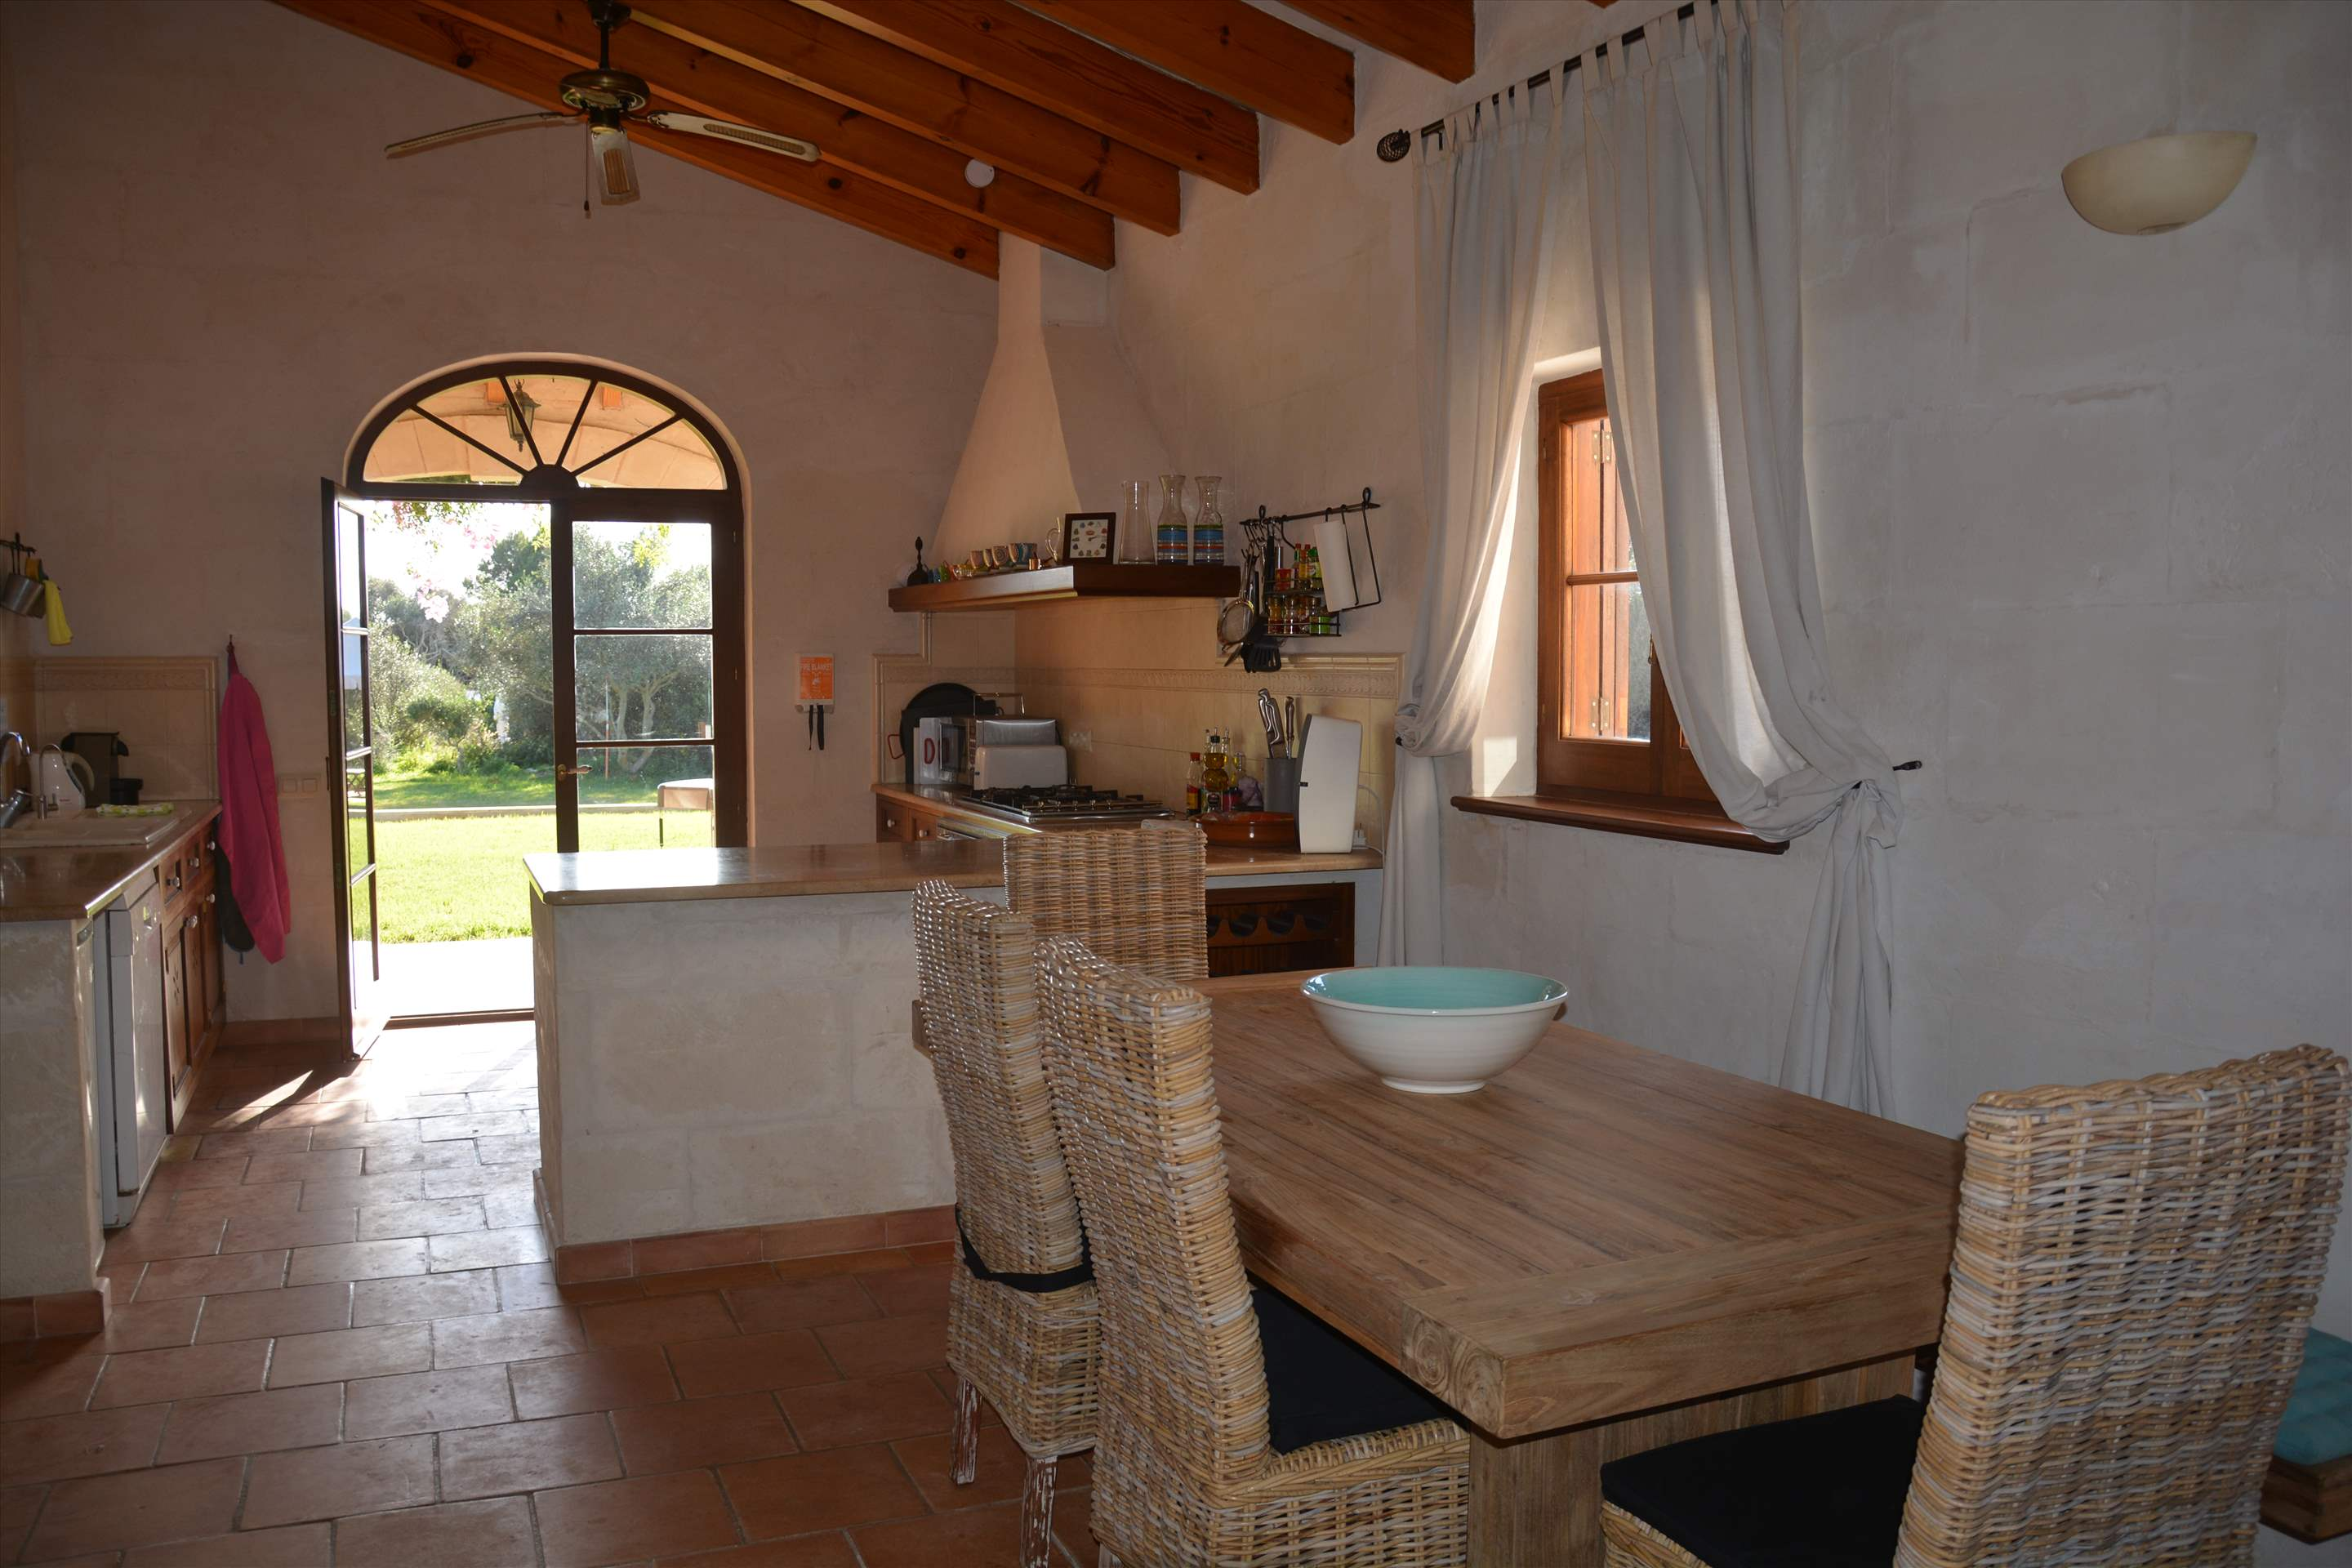 Les Arcs, 5 bedroom villa in Mahon, San Luis & South East, Menorca Photo #7